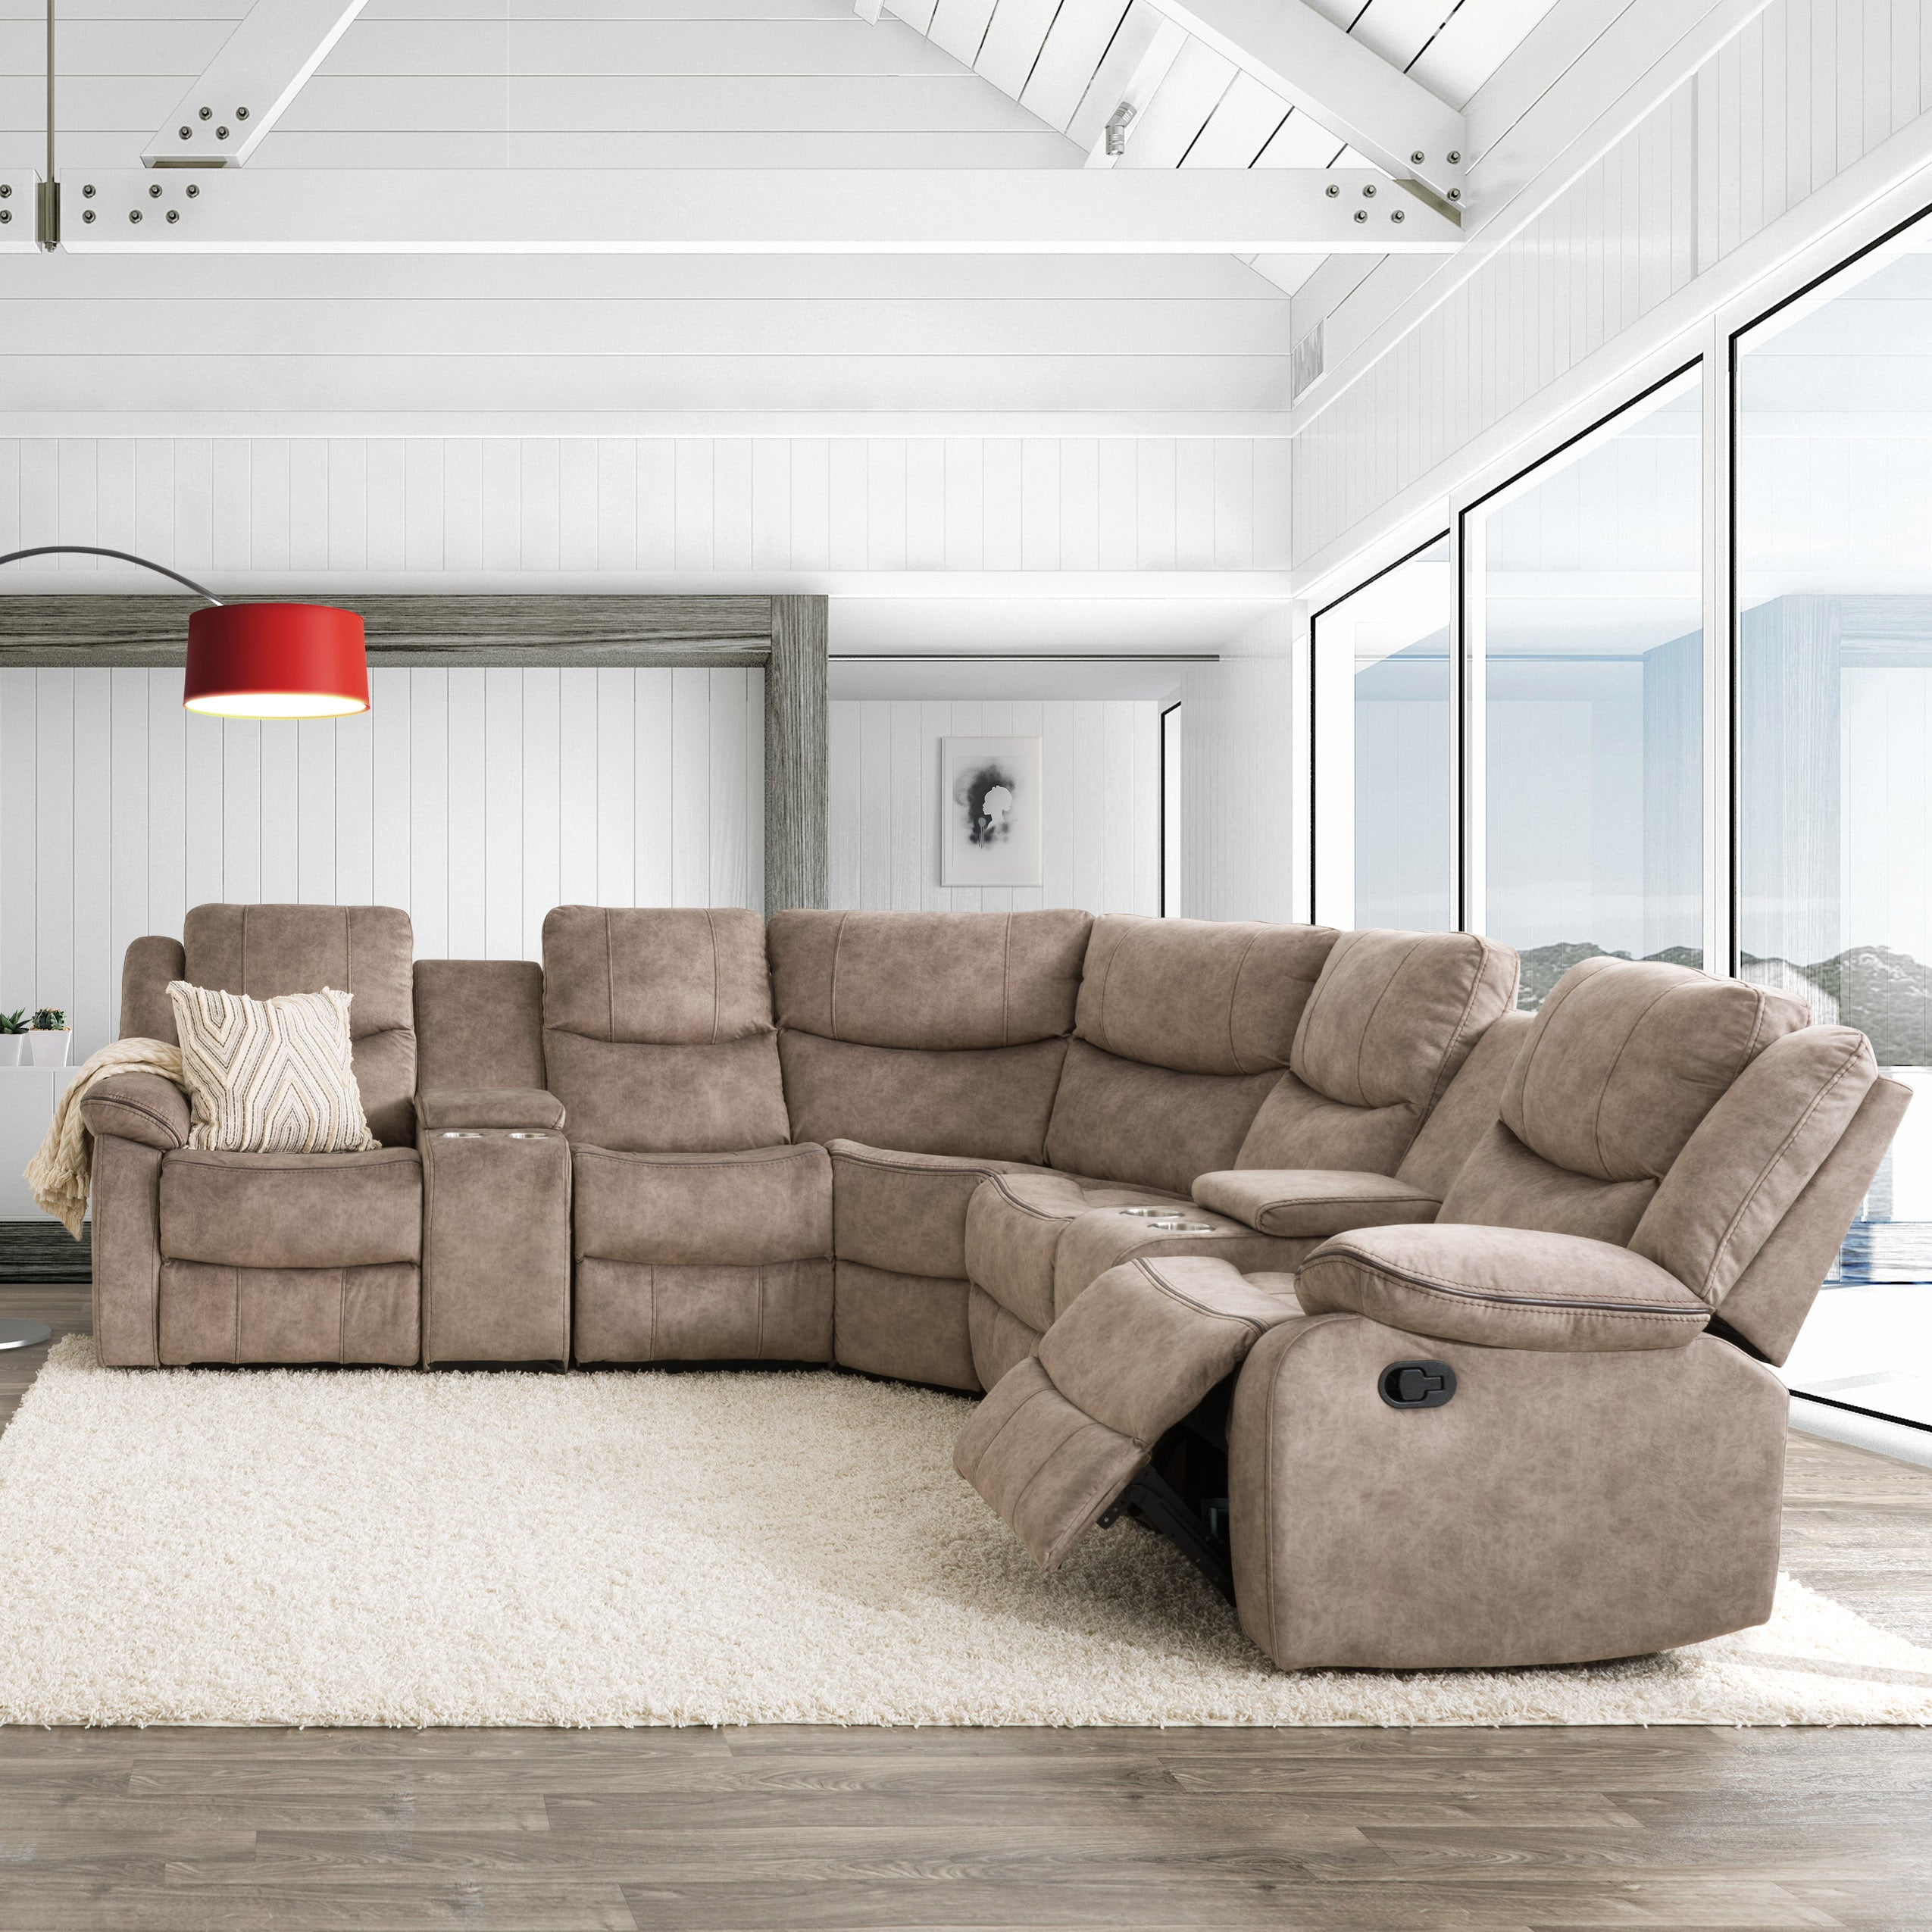 7pc curved modular reclining sofa sectional with storage consoles fabric